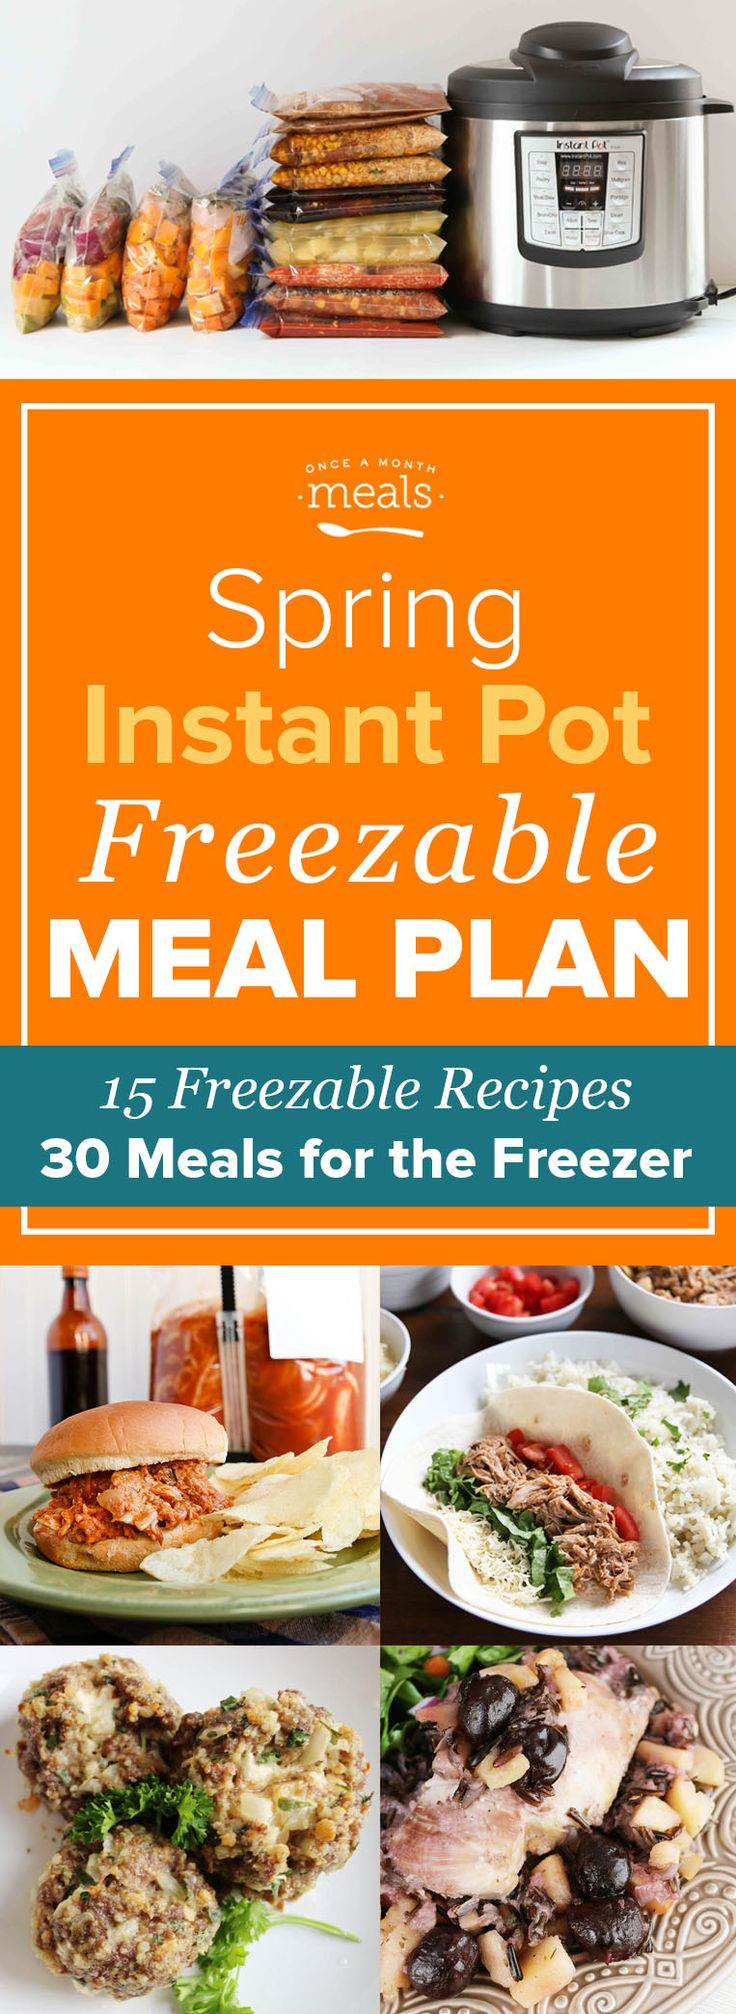 Fill your freezer with meals you can fix at a moment's notice with this Spring Instant Pot Freezer Menu! Creamy Tomato Soup, Cheese-Filled Meatballs, and Spicy Honey Chicken are just a sampling of the satisfying freezer recipes on this super easy menu.